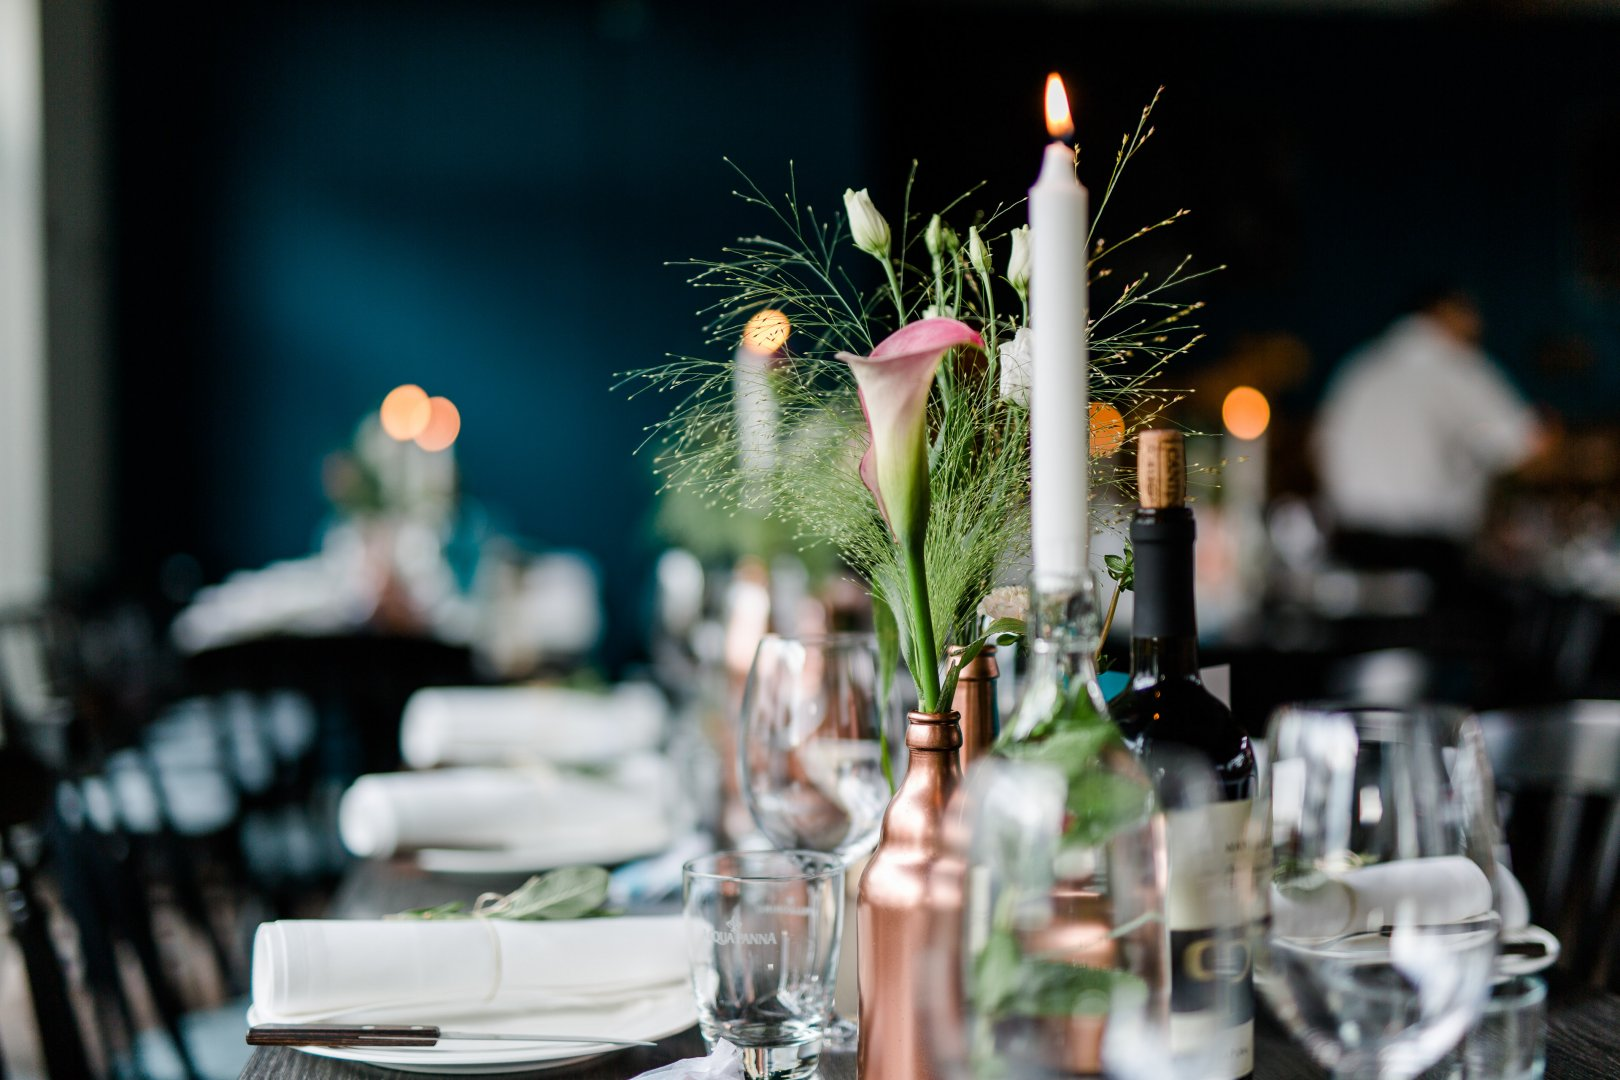 Photograph Centrepiece Rehearsal dinner Restaurant Yellow Table Flower Floral design Flower Arranging Floristry Tableware Plant Wedding reception Champagne stemware Ceremony Photography Function hall Interior design Meal Banquet Furniture Dinner Drinkware Party Stemware Glass Brunch